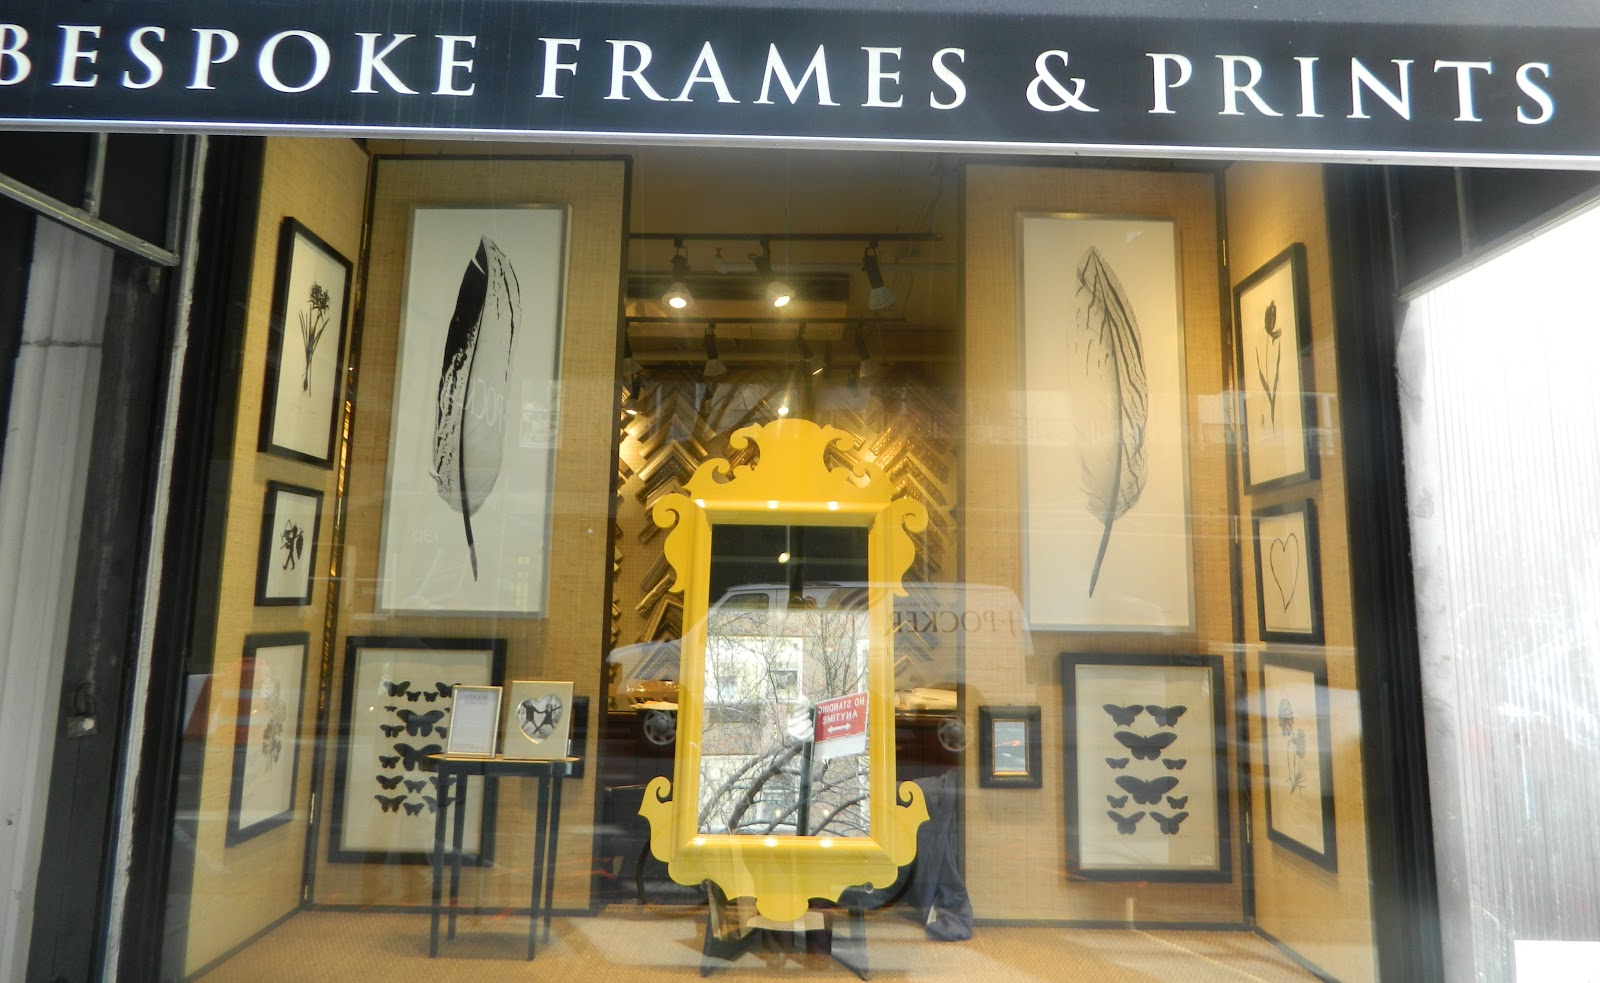 the art of framing with an insiders look at jpocker in nyc